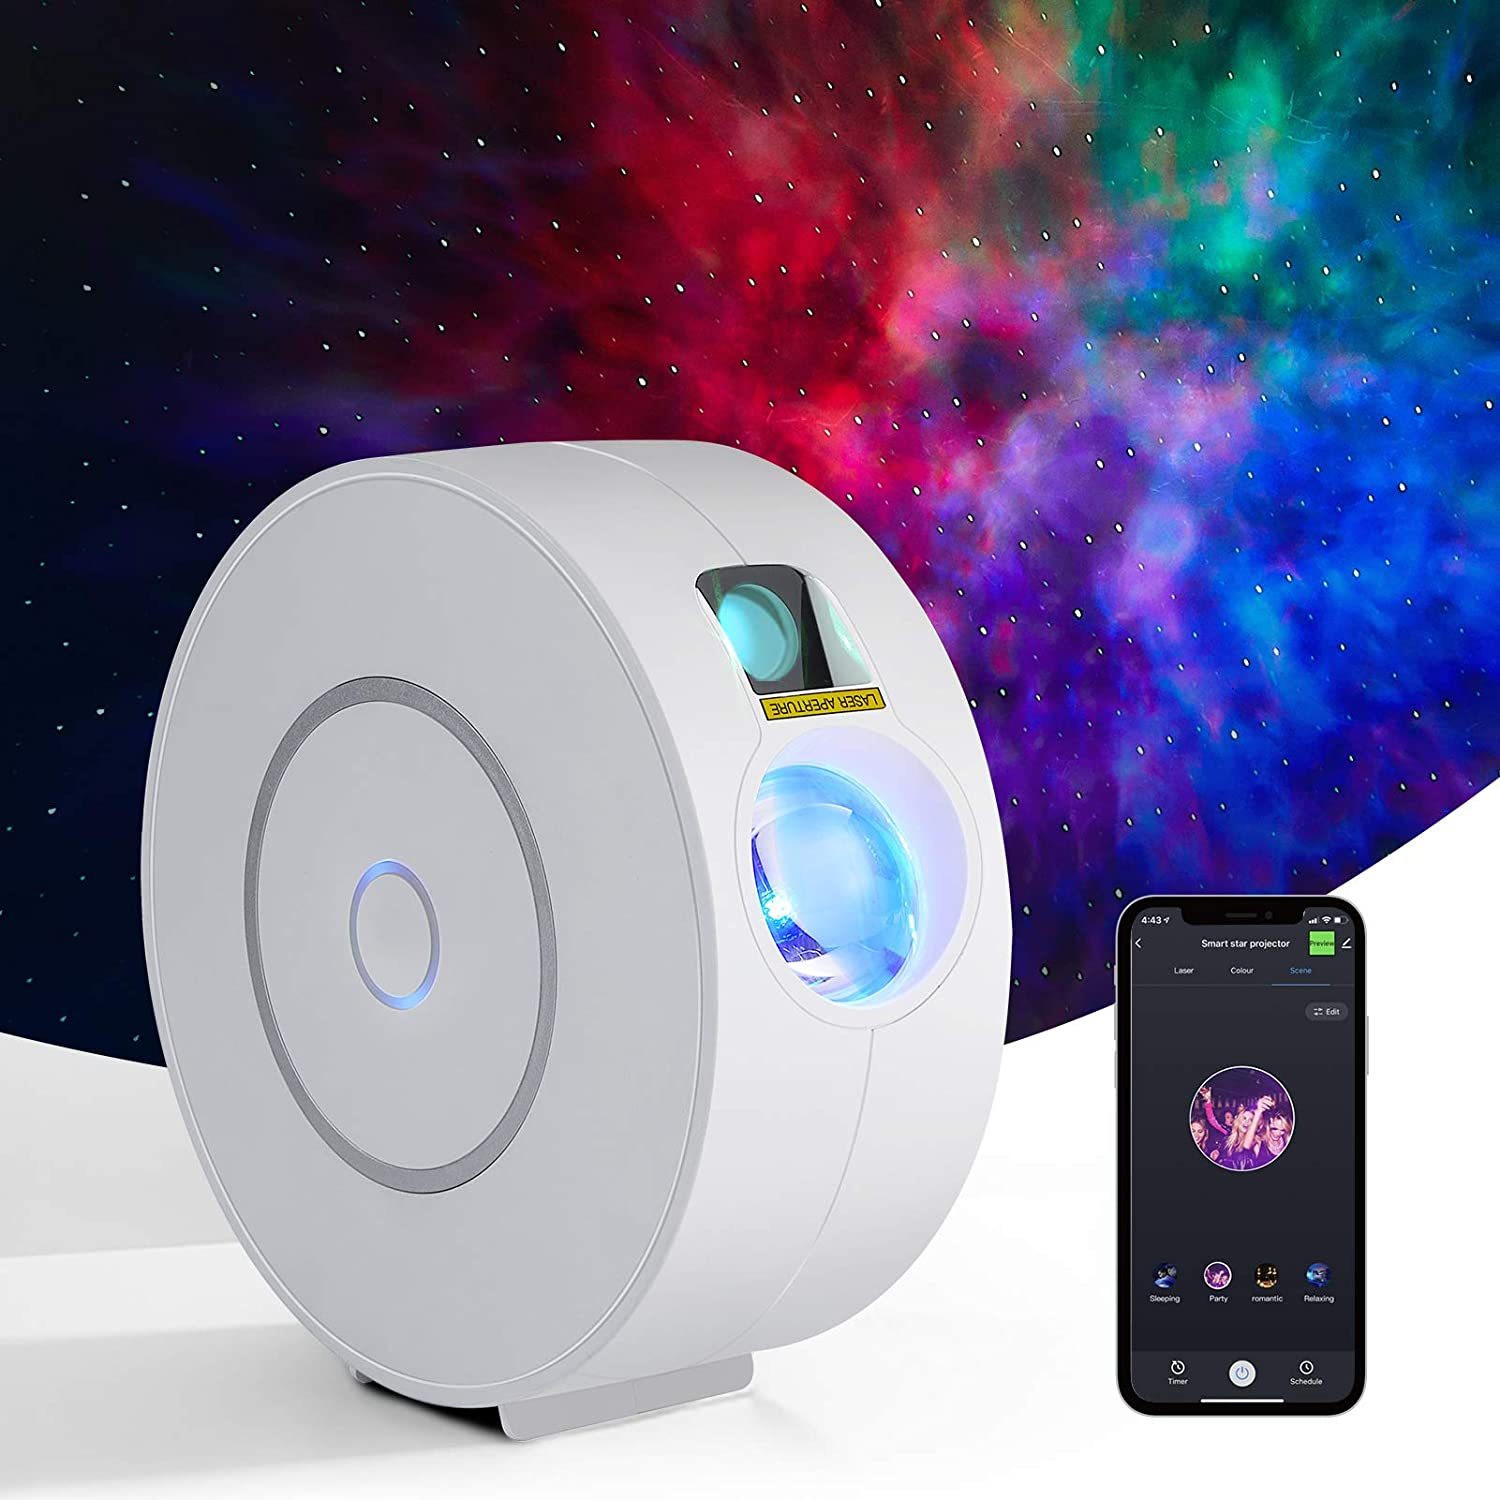 Star Projector,Galaxy Projector,Night Light Projector,Sky Lights,Nebula Projector for Bedroom,Baby Room,Game Rooms and Party Decoration,Compatible with Alexa & Google Home,Control by APP,WiFi